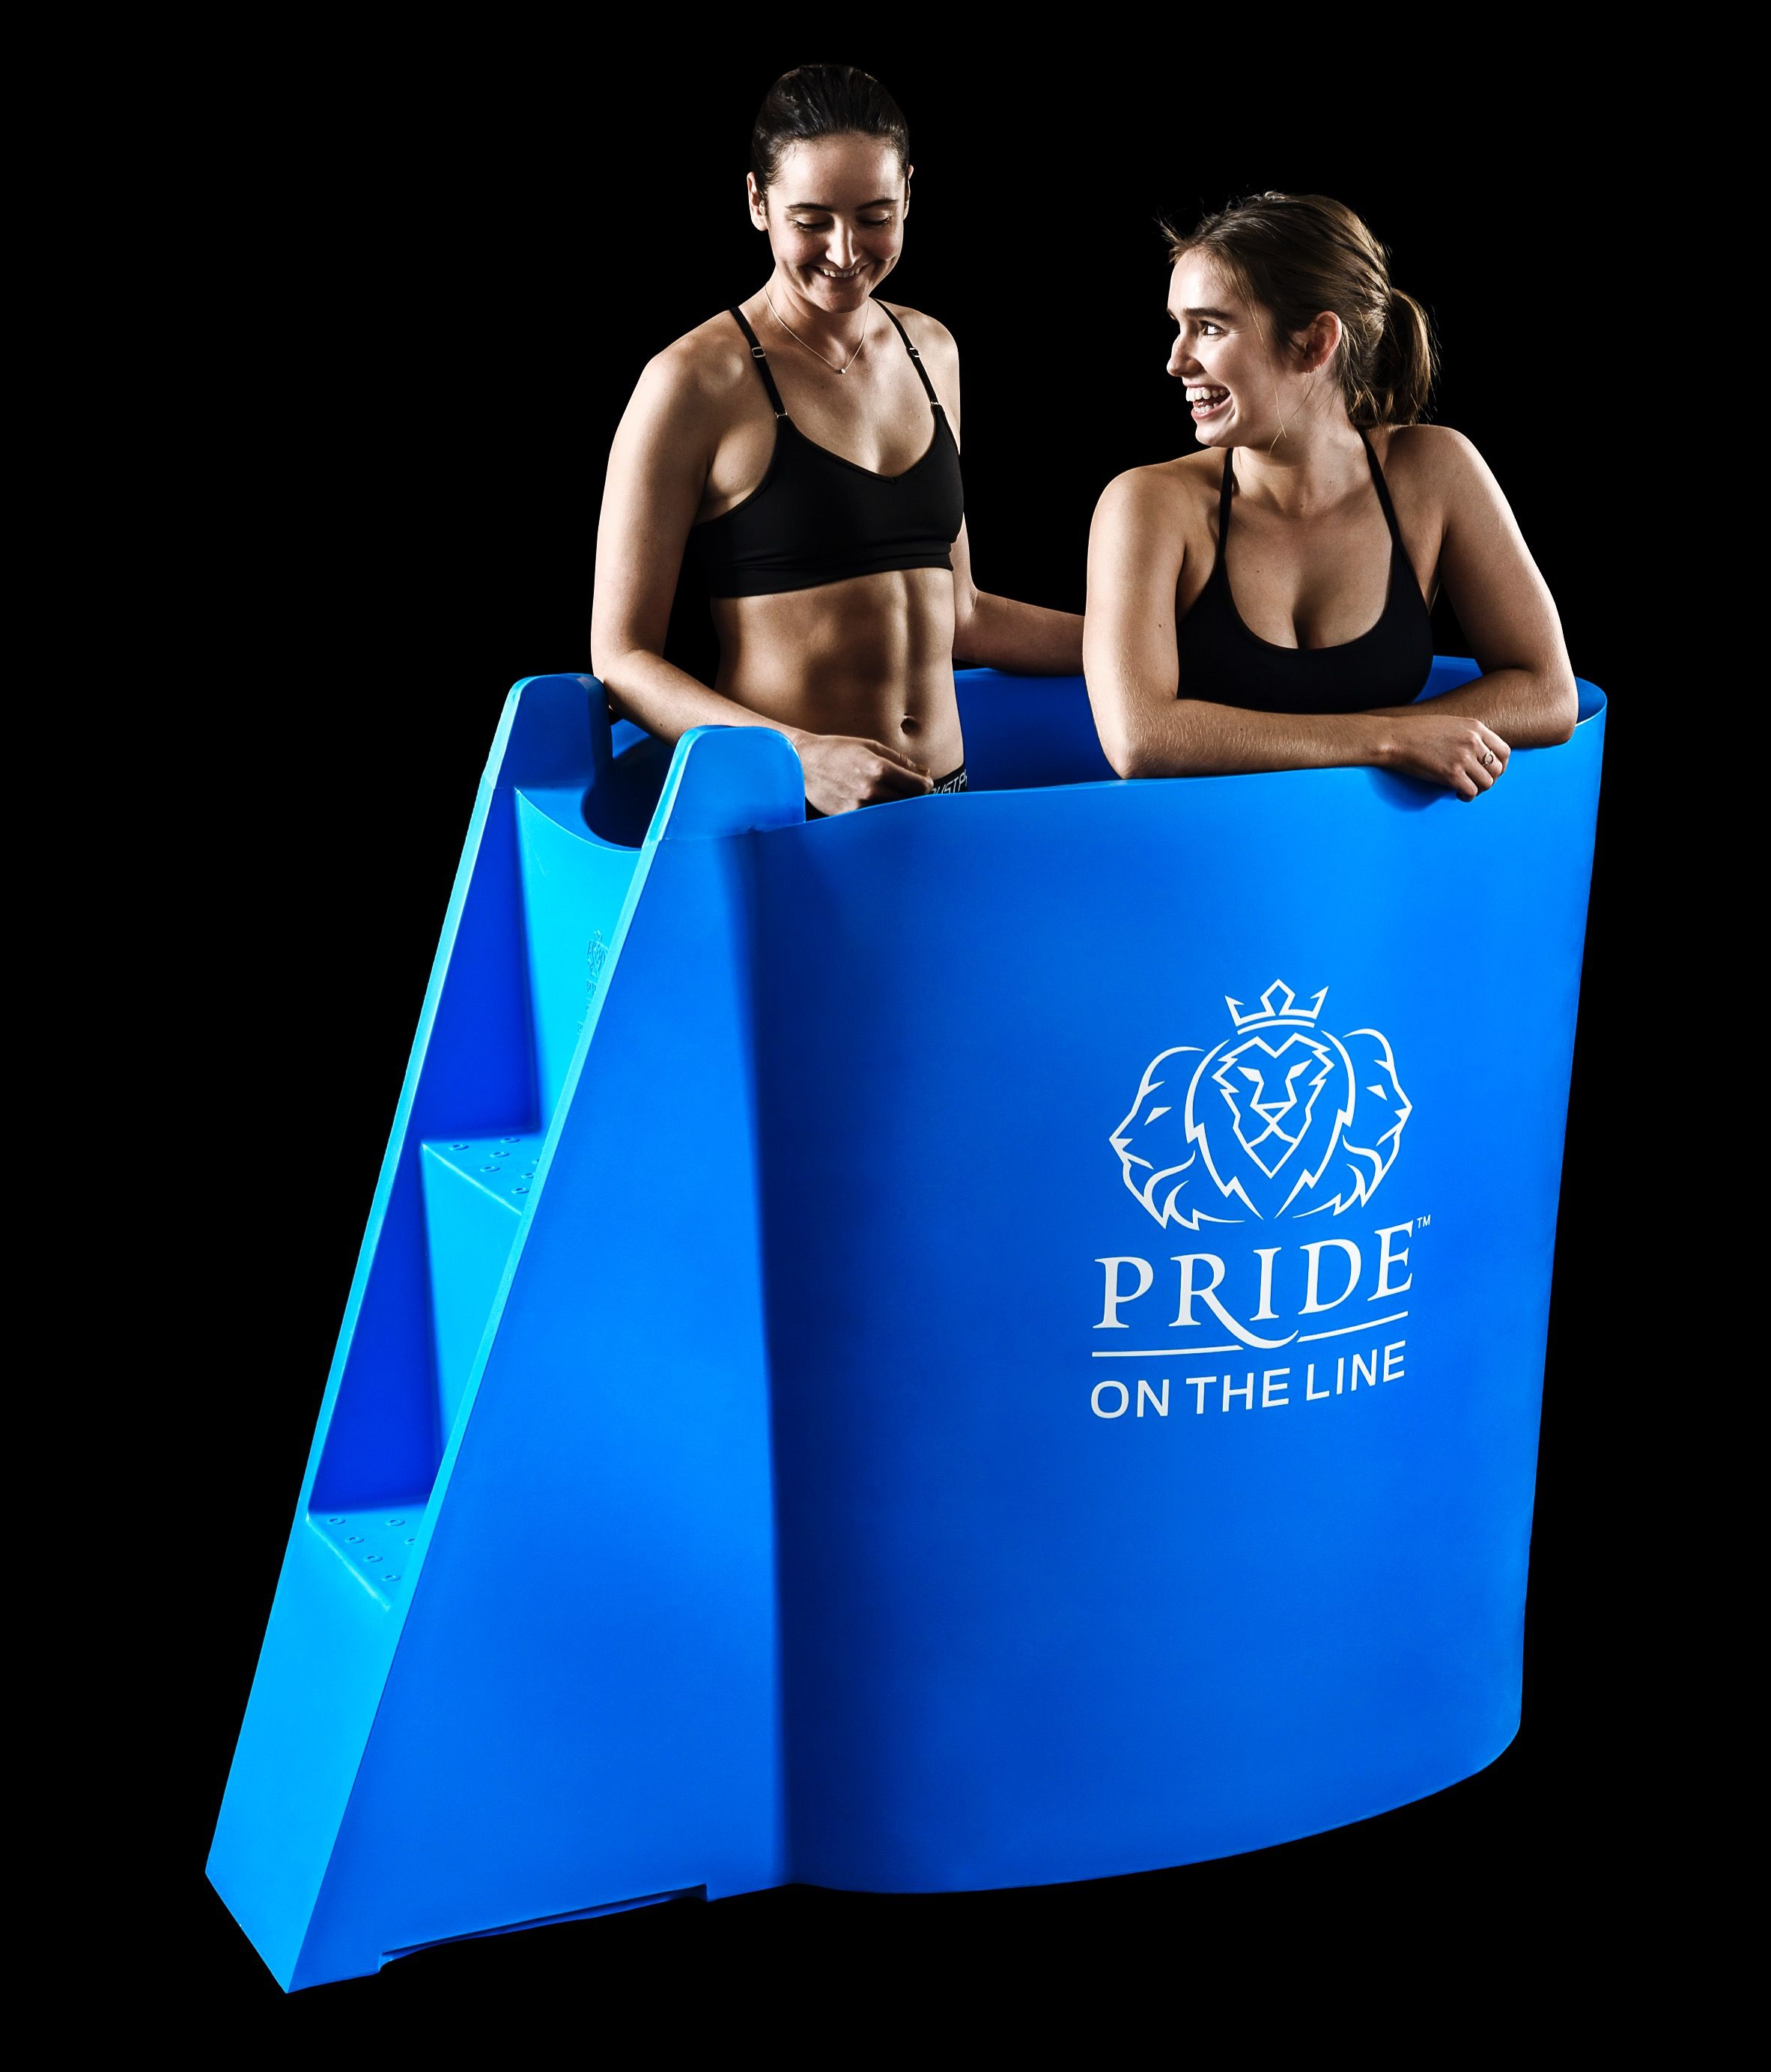 Pin by Pride on the Line on Ice baths for sale | Pinterest | Athlete